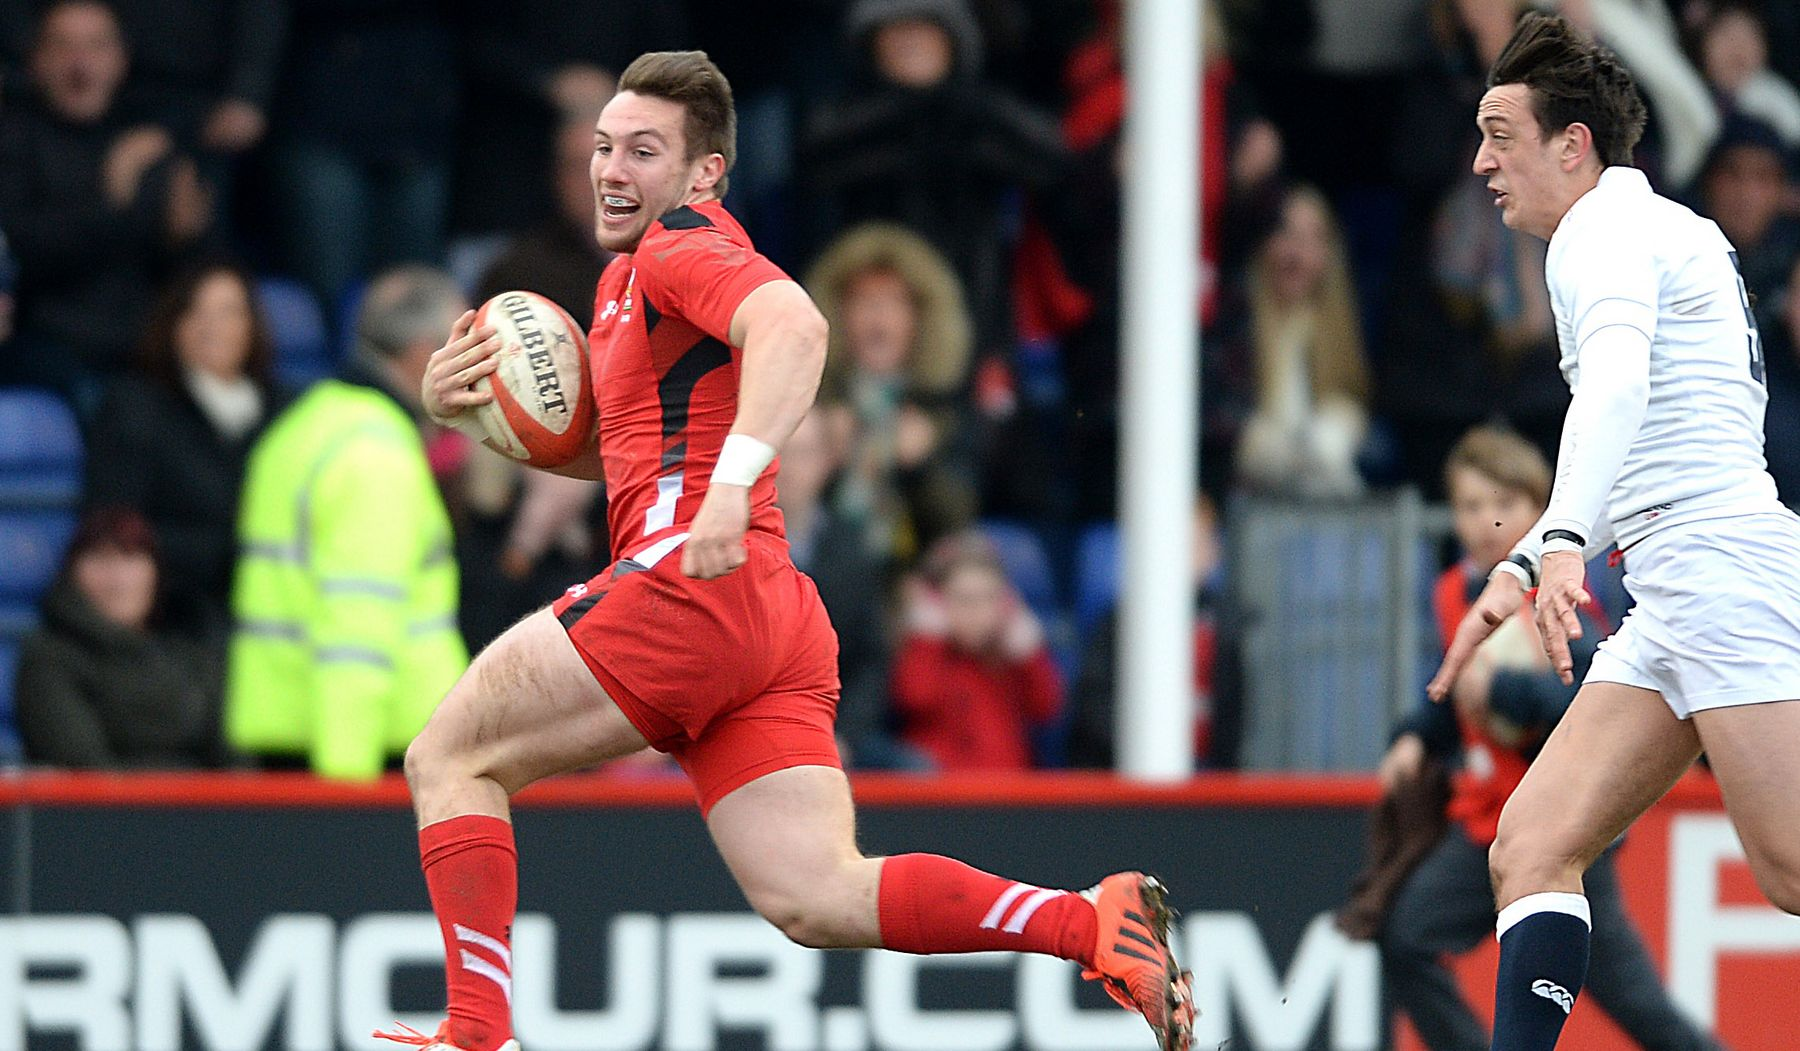 Wales Under 18 squad for South Africa tour